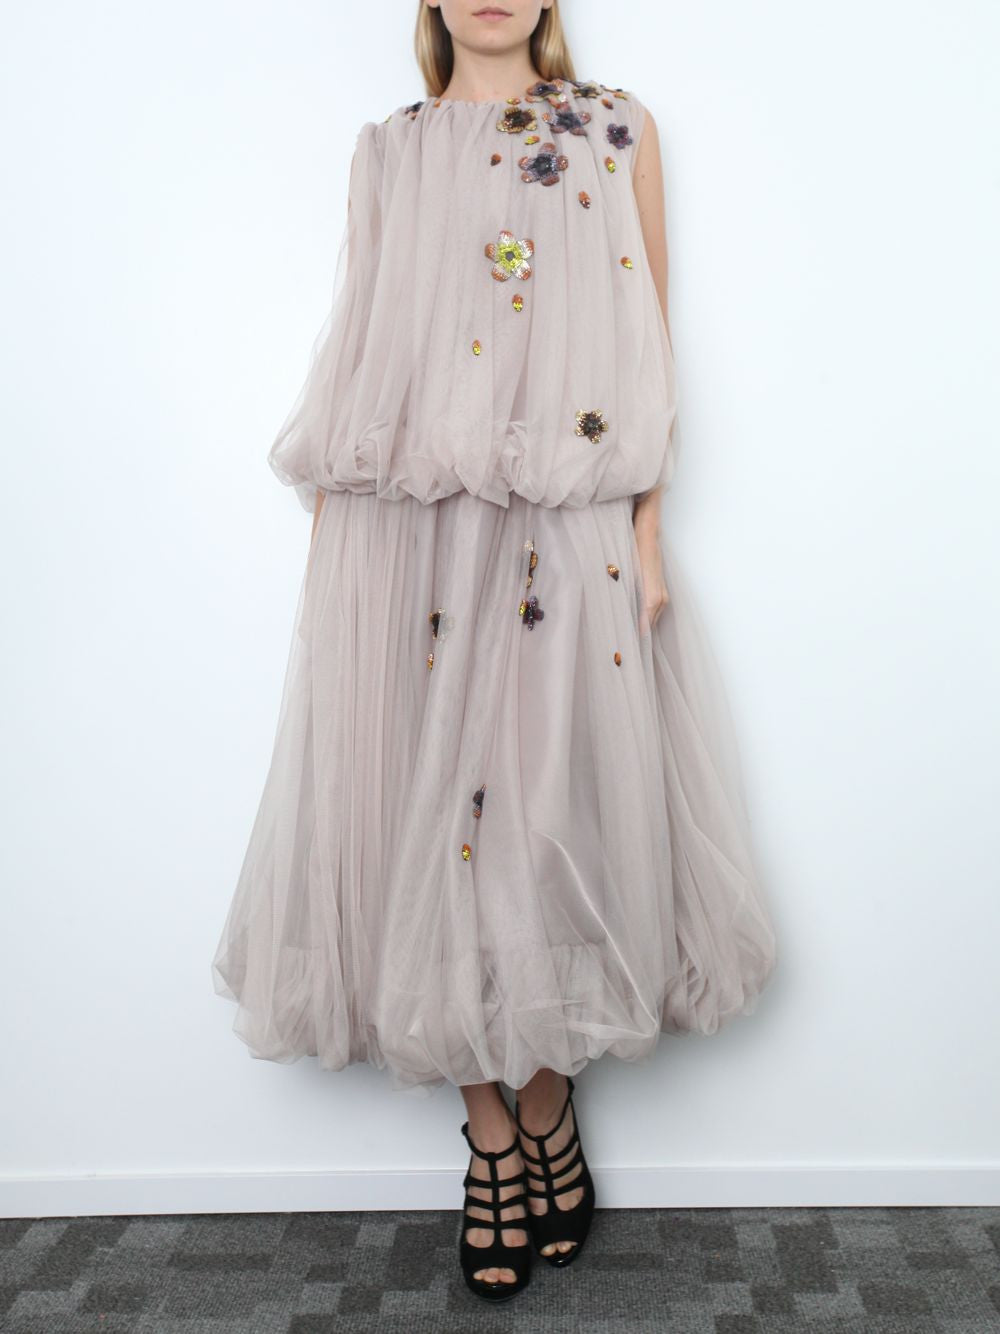 Tulle Dress with embellishments